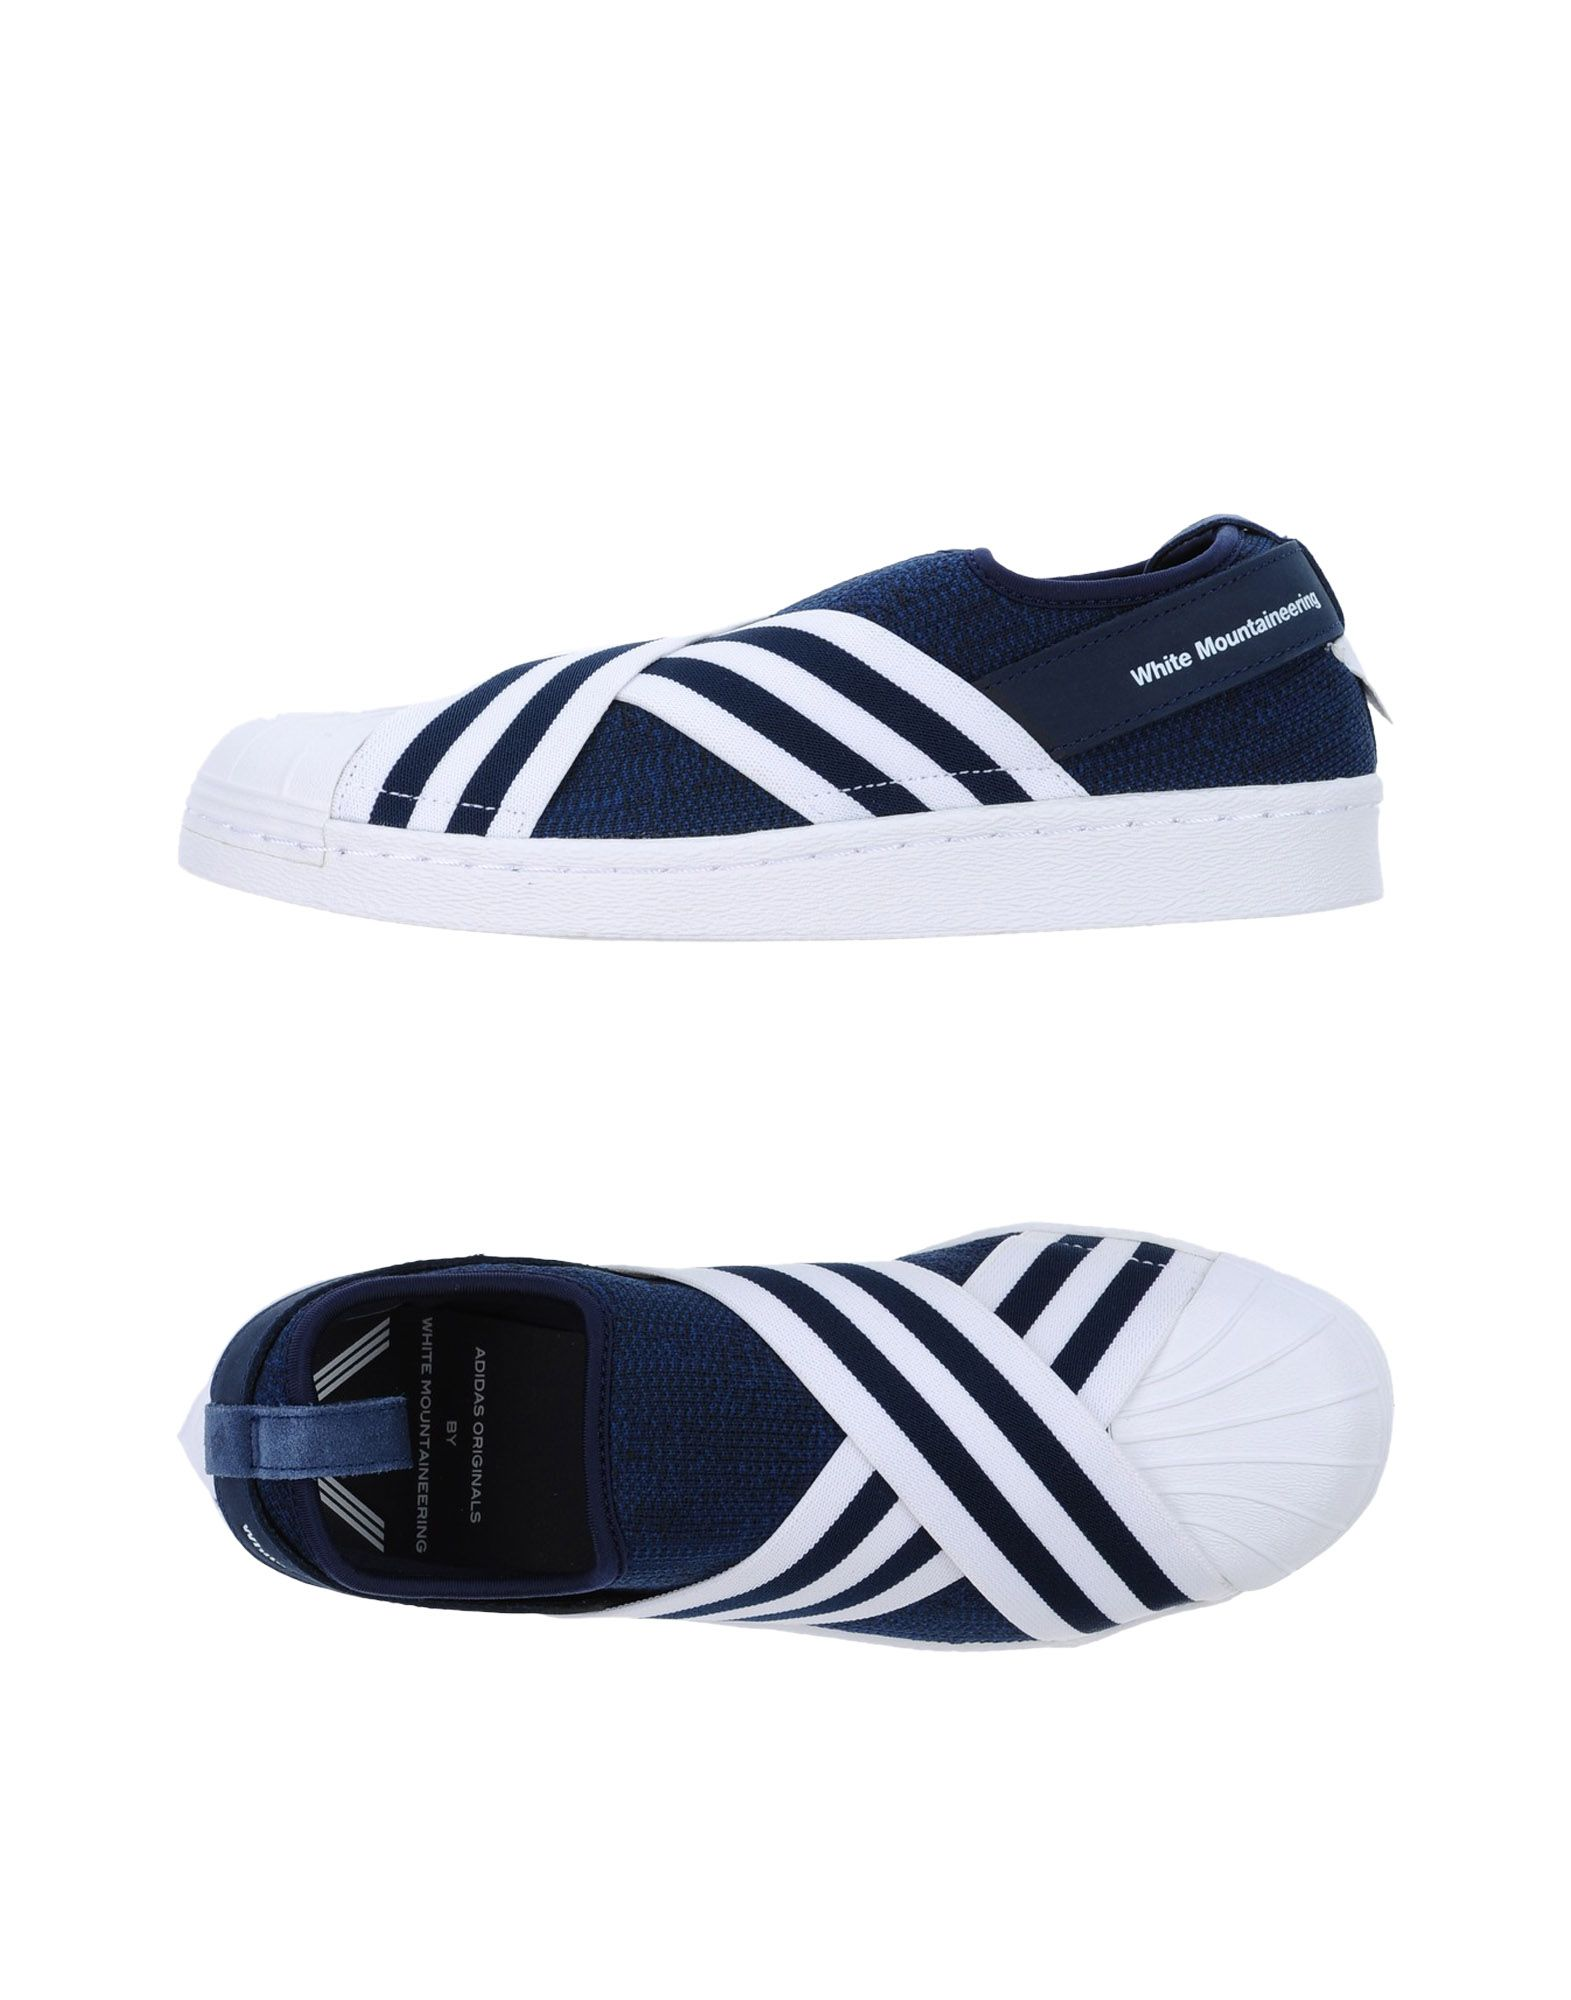 ADIDAS ORIGINALS by WHITE MOUNTAINEERING Low tops & sneakers